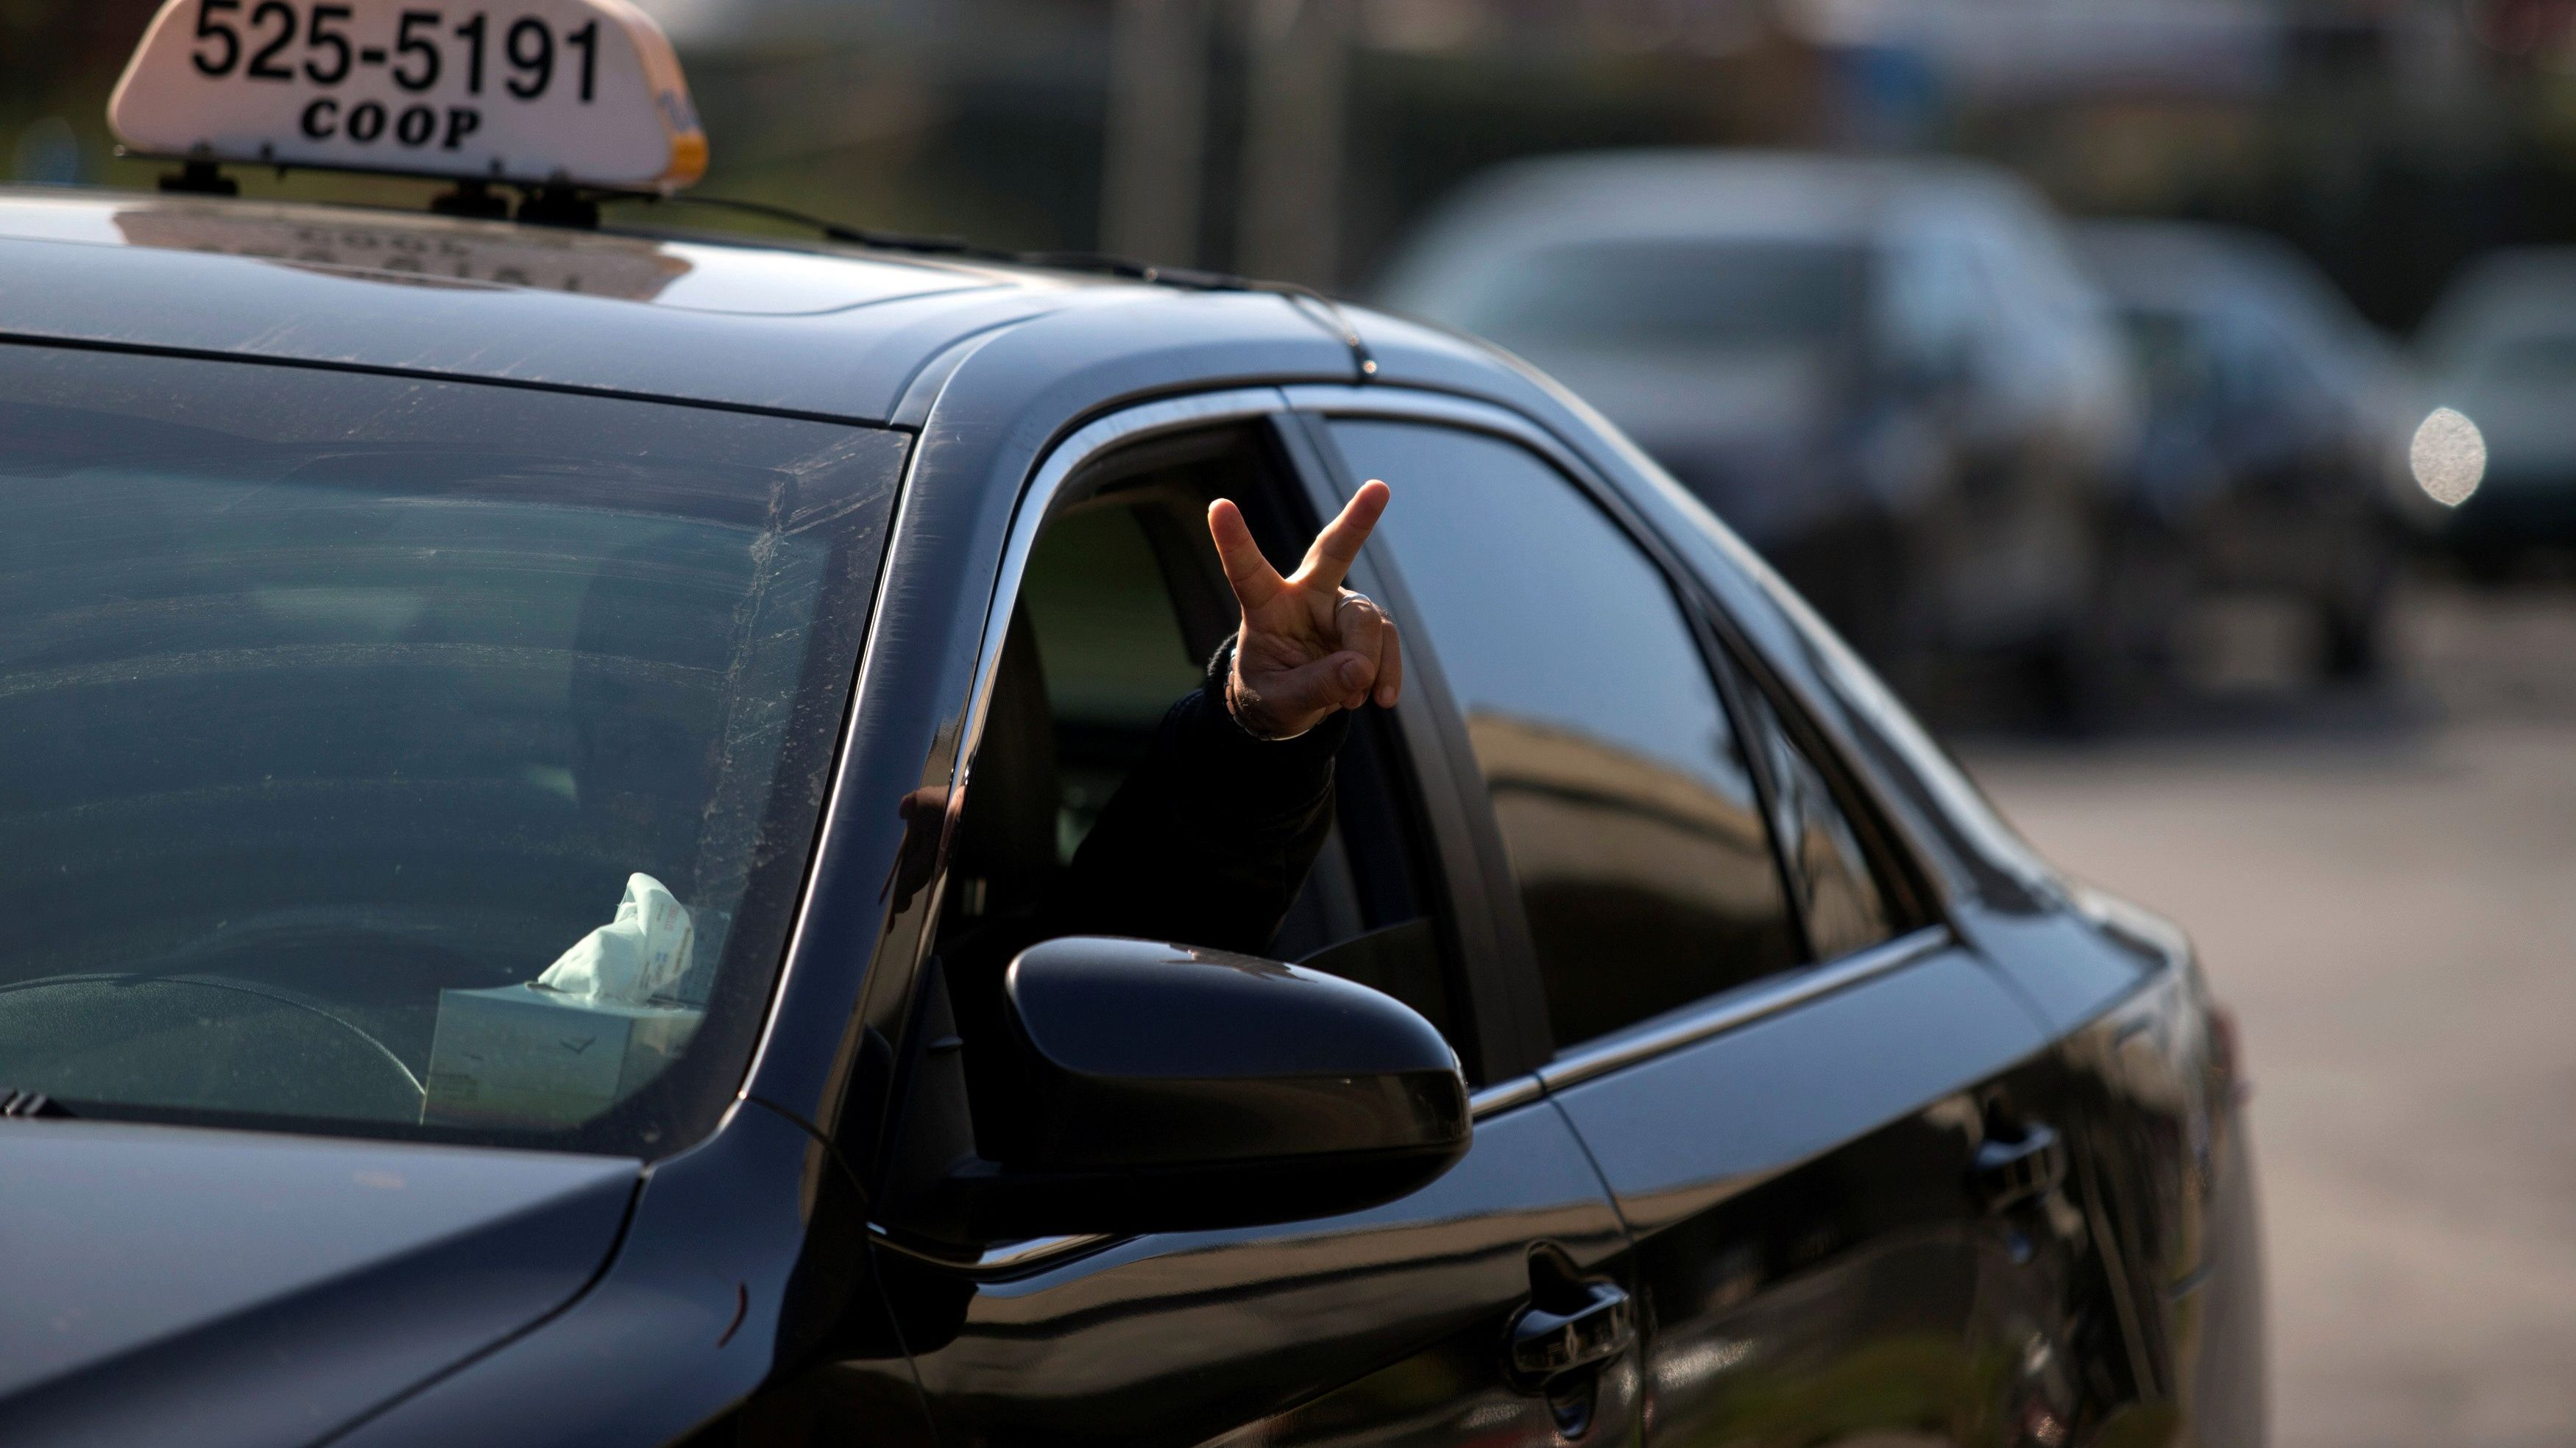 A taxi driver flashes a peace sign as he and other taxi drivers begin their protest against Uber in Montreal, Canada October 5, 2016. REUTERS/Christinne Muschi - D1BEUFGHFOAA